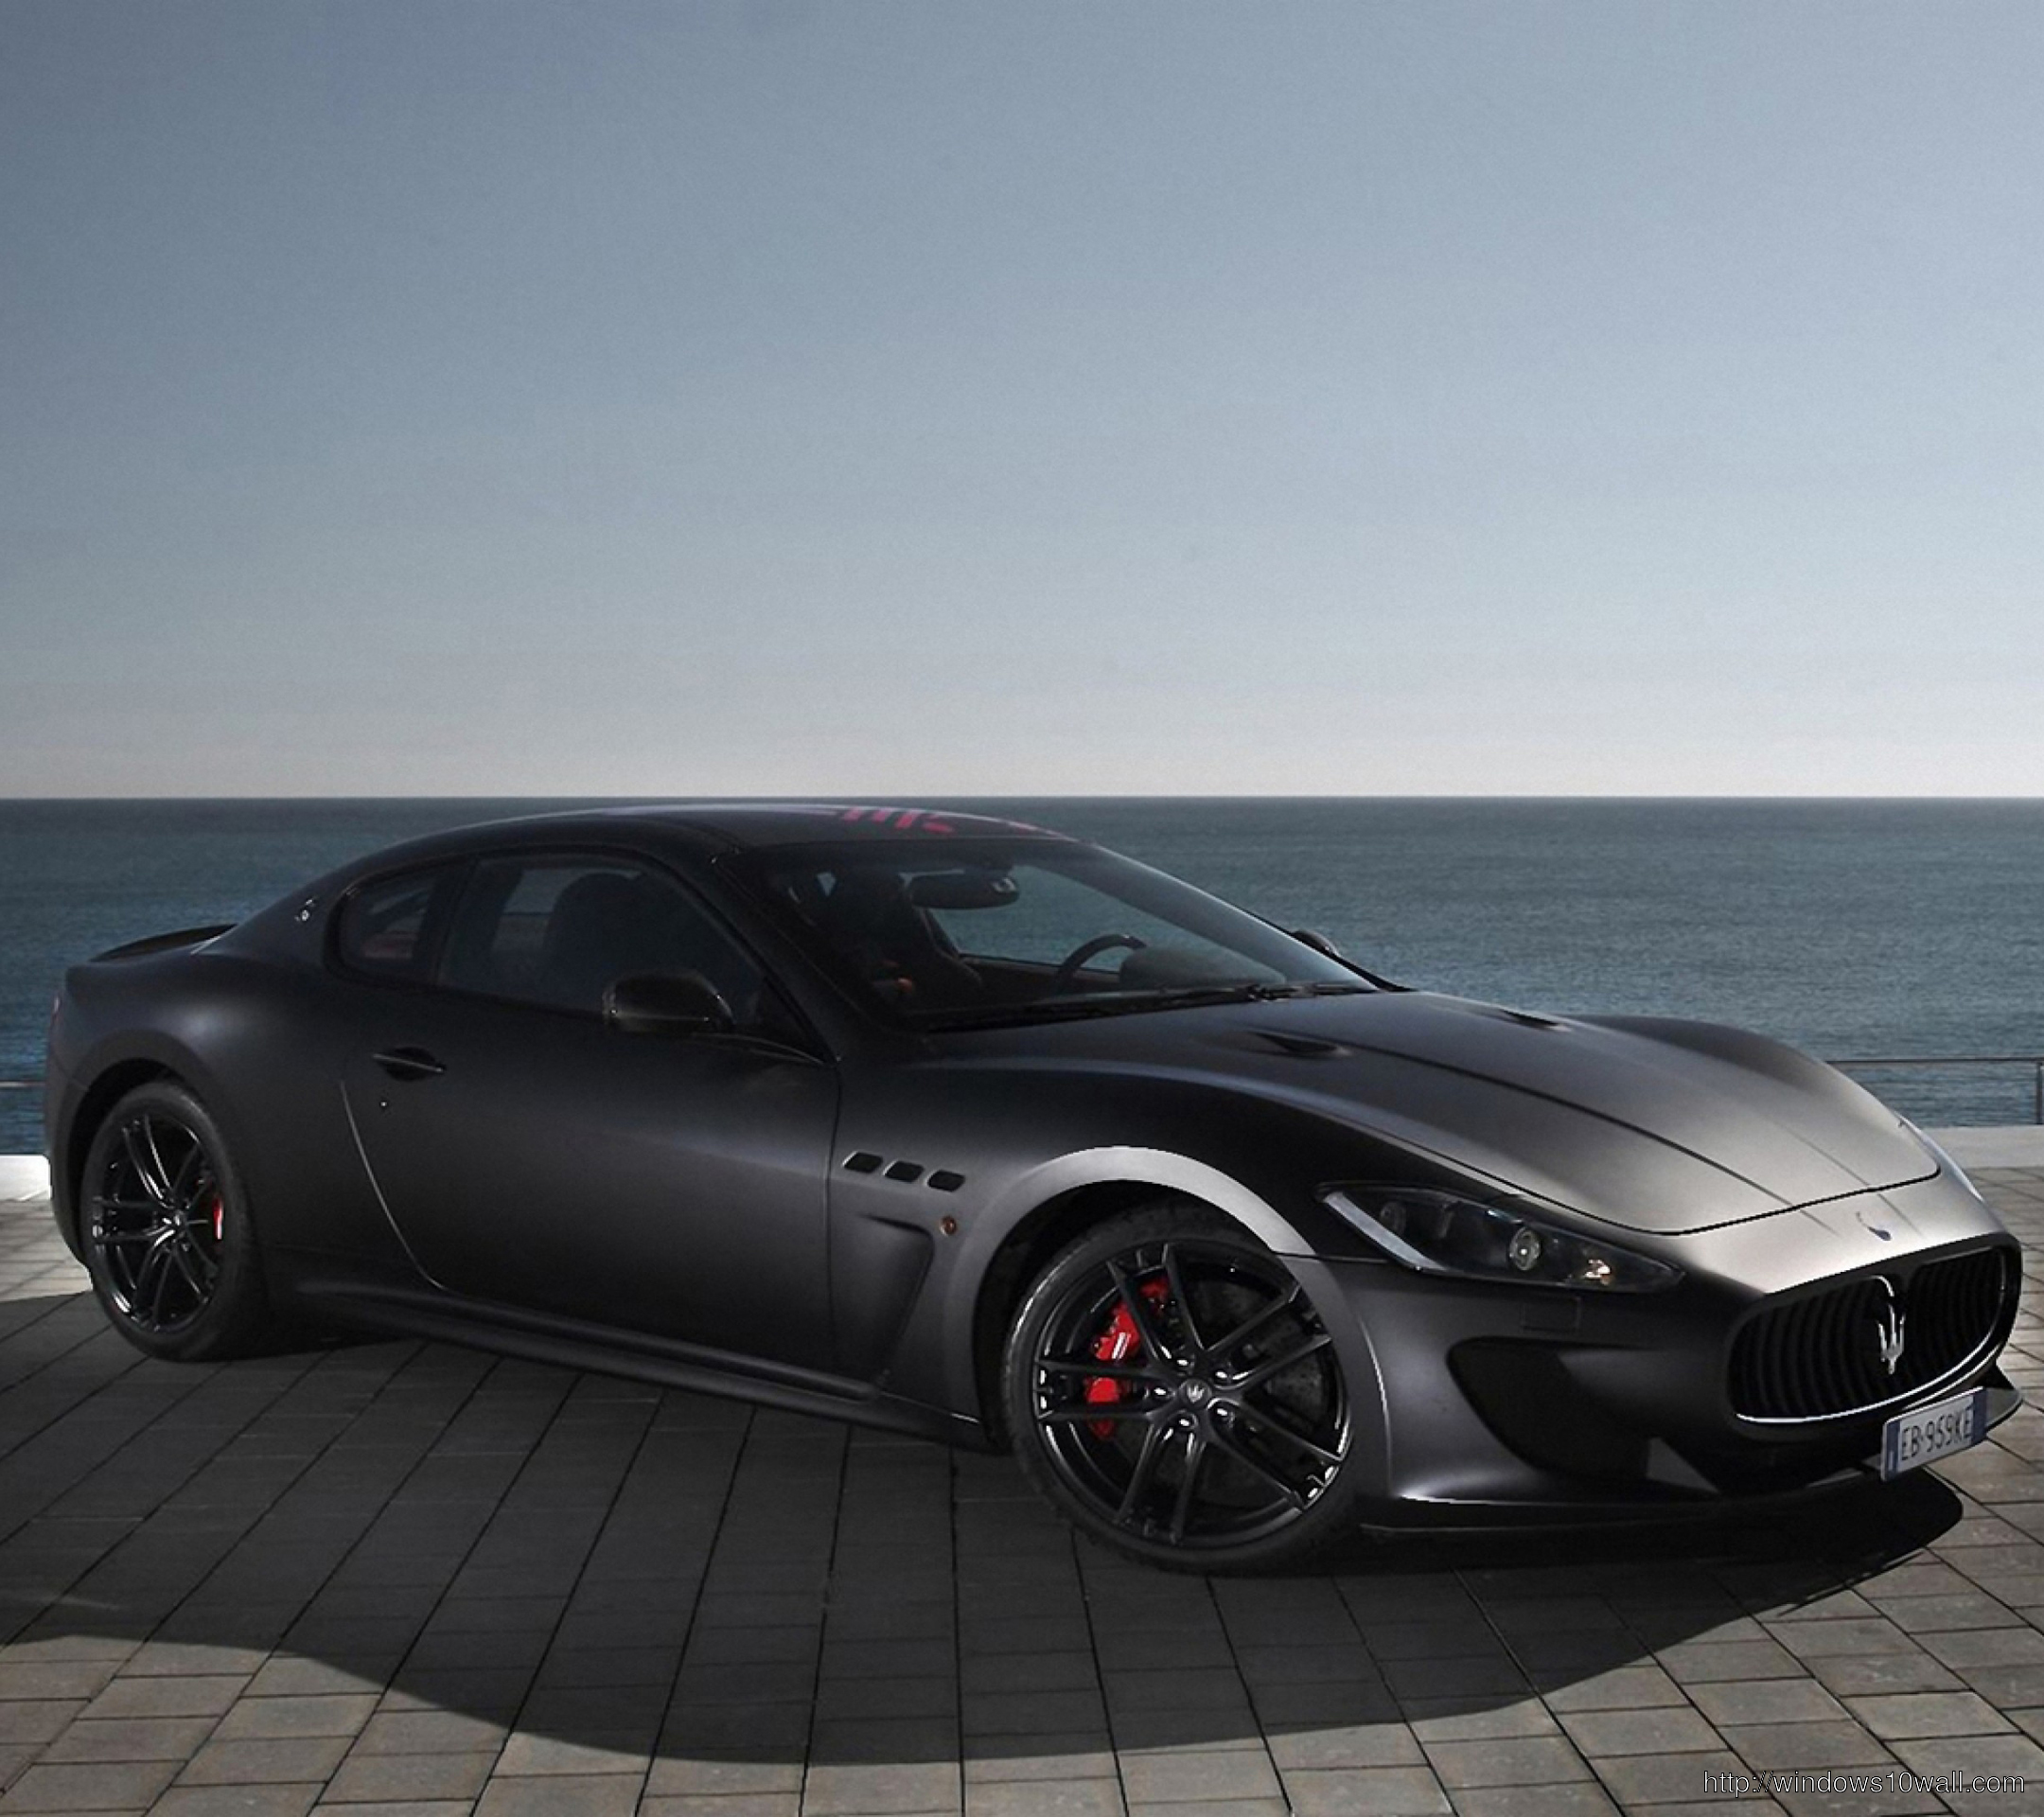 Maserati Samsung Galaxy S4 HD Wallpaper